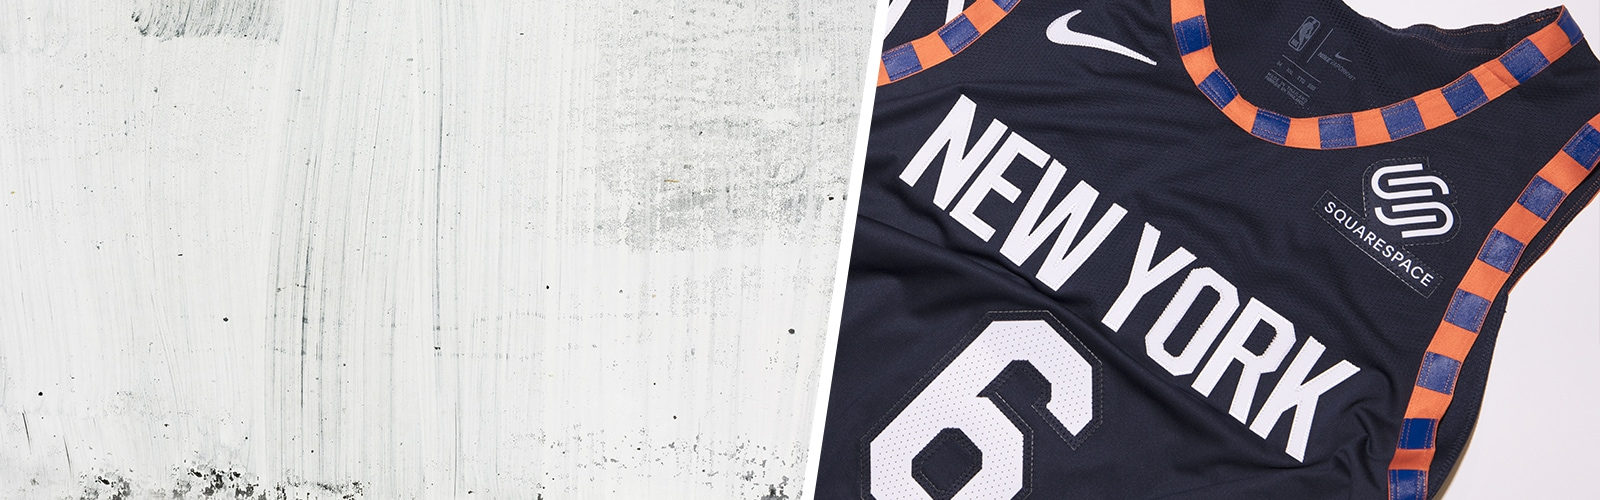 New York Knicks Unveil City Edition Uniforms Inspired by the NYC Skyline